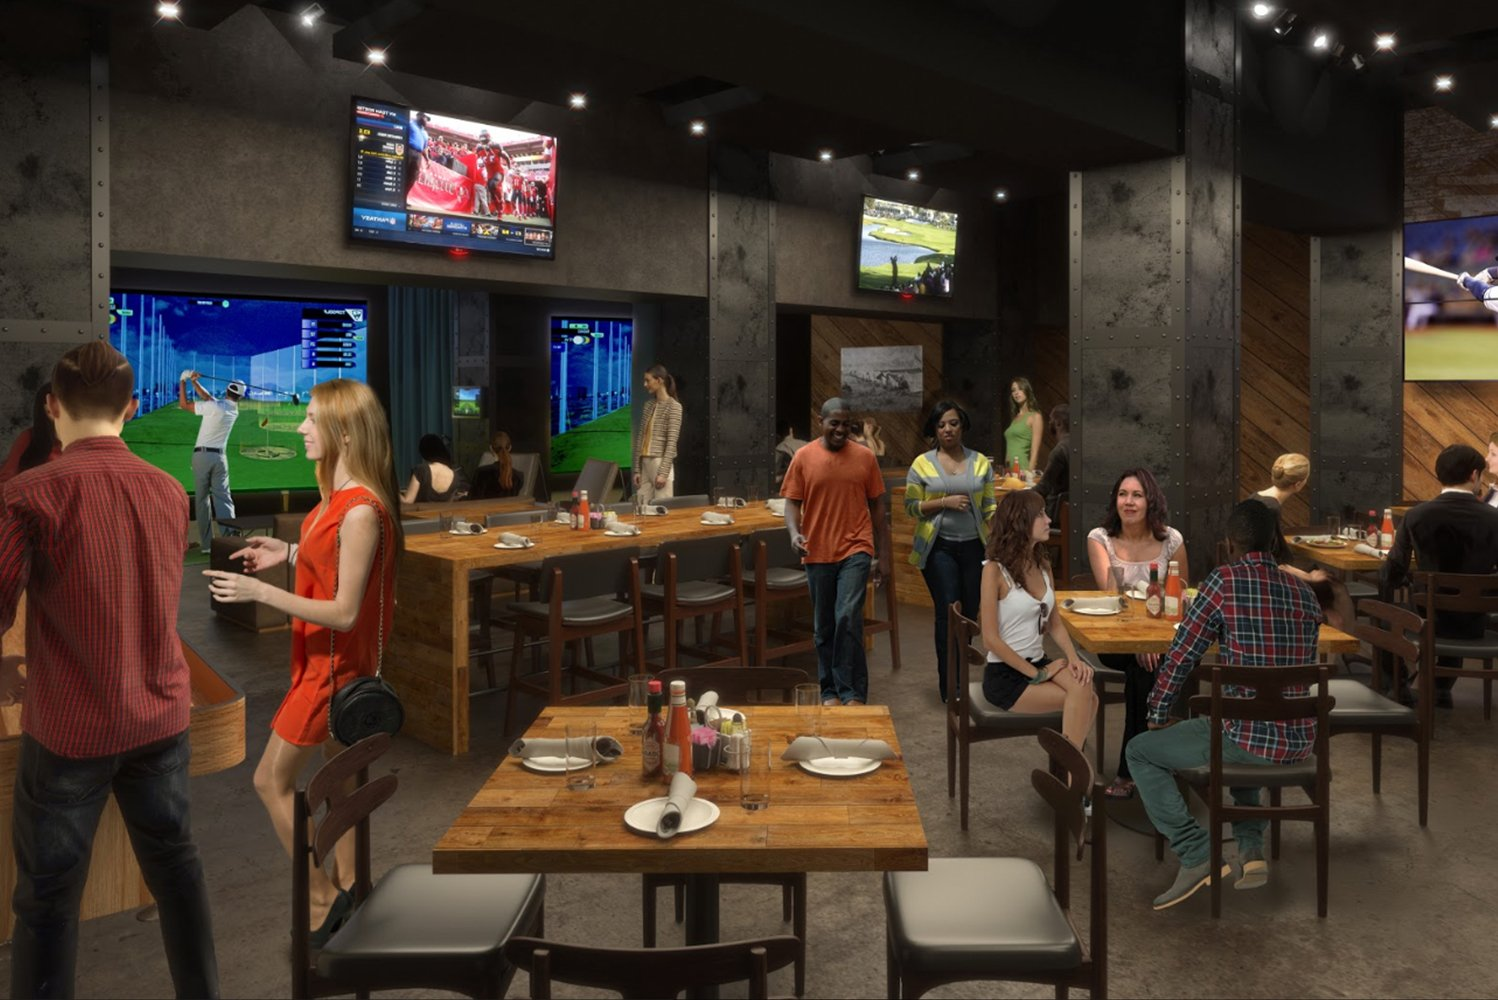 Garrison Tavern also has two large media walls, consisting of nine screens each, and over 35 individual TVs, spread throughout the venue.